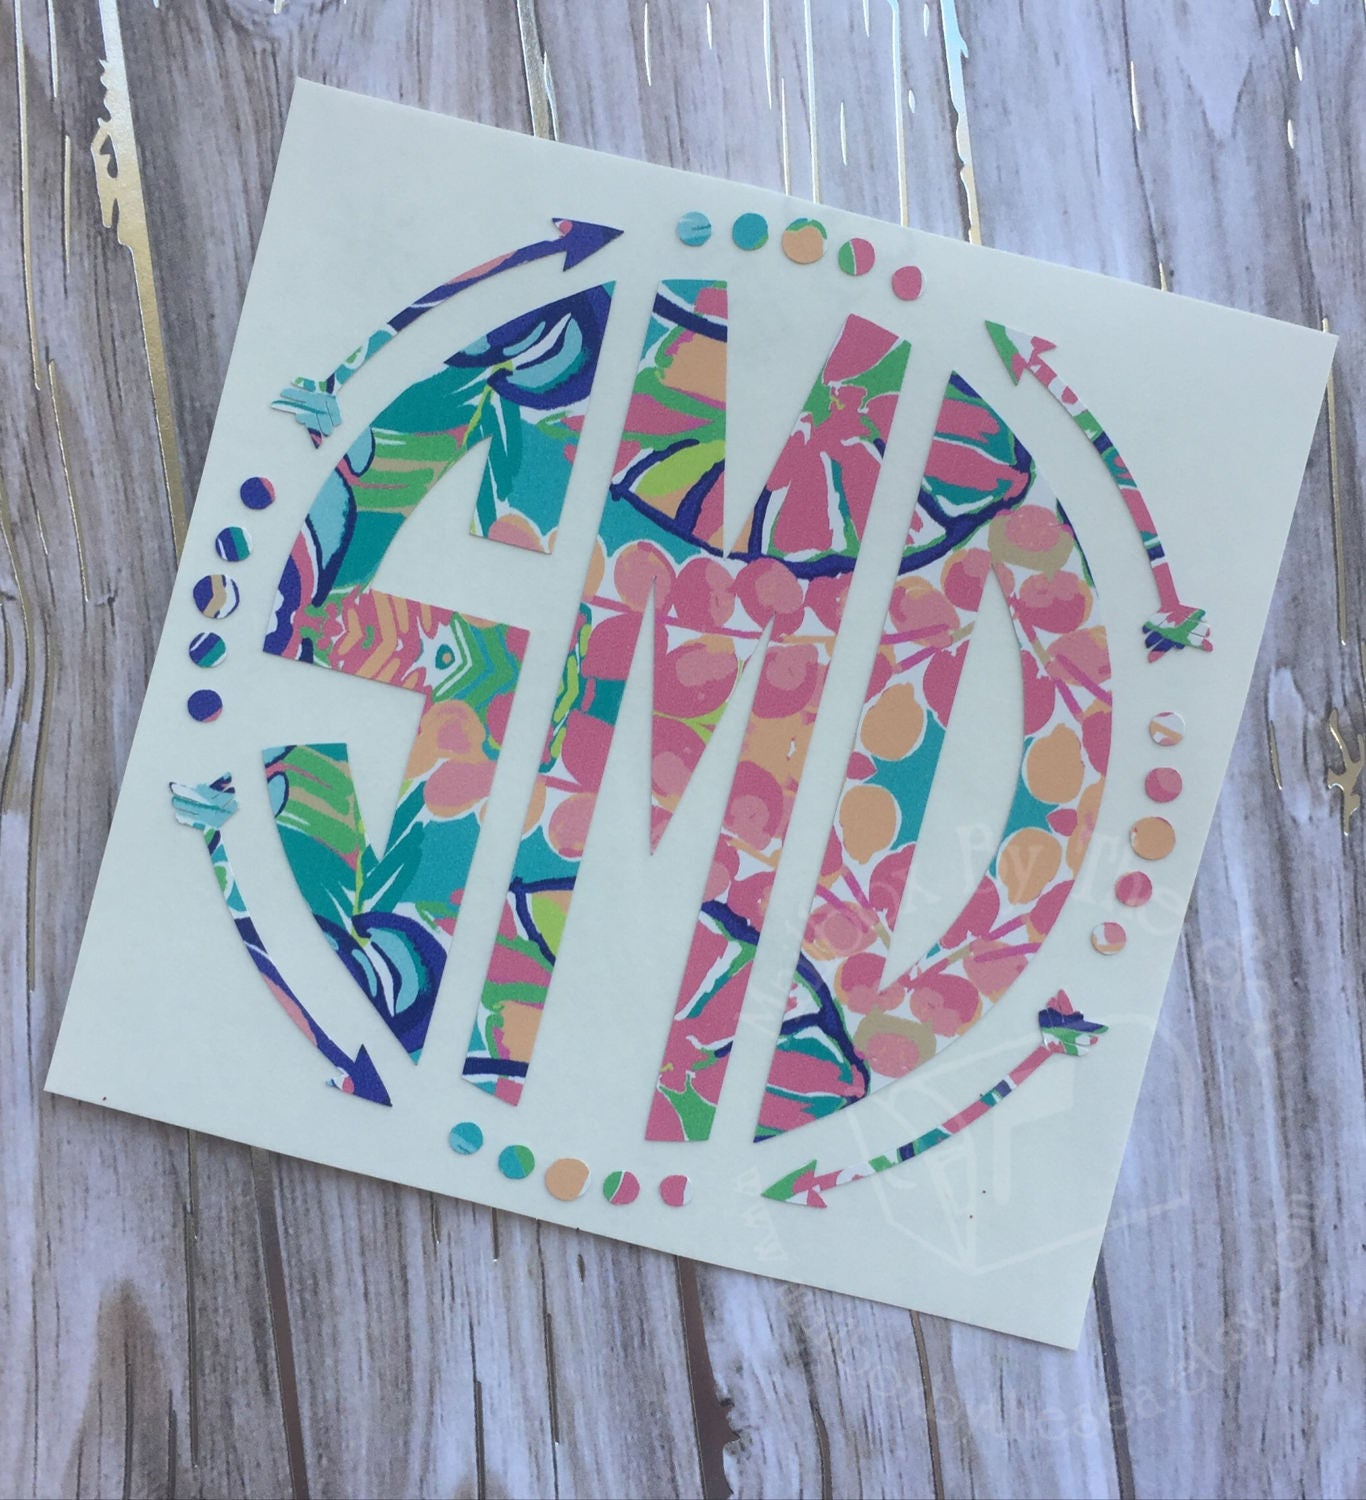 Car sticker maker philippines - Lilly Pulitzer Inspired Arrow Monogram Decal Yeti Decal Lilly Car Decal Lilly Monogram Decal Lilly Sticker Car Decal Preppy